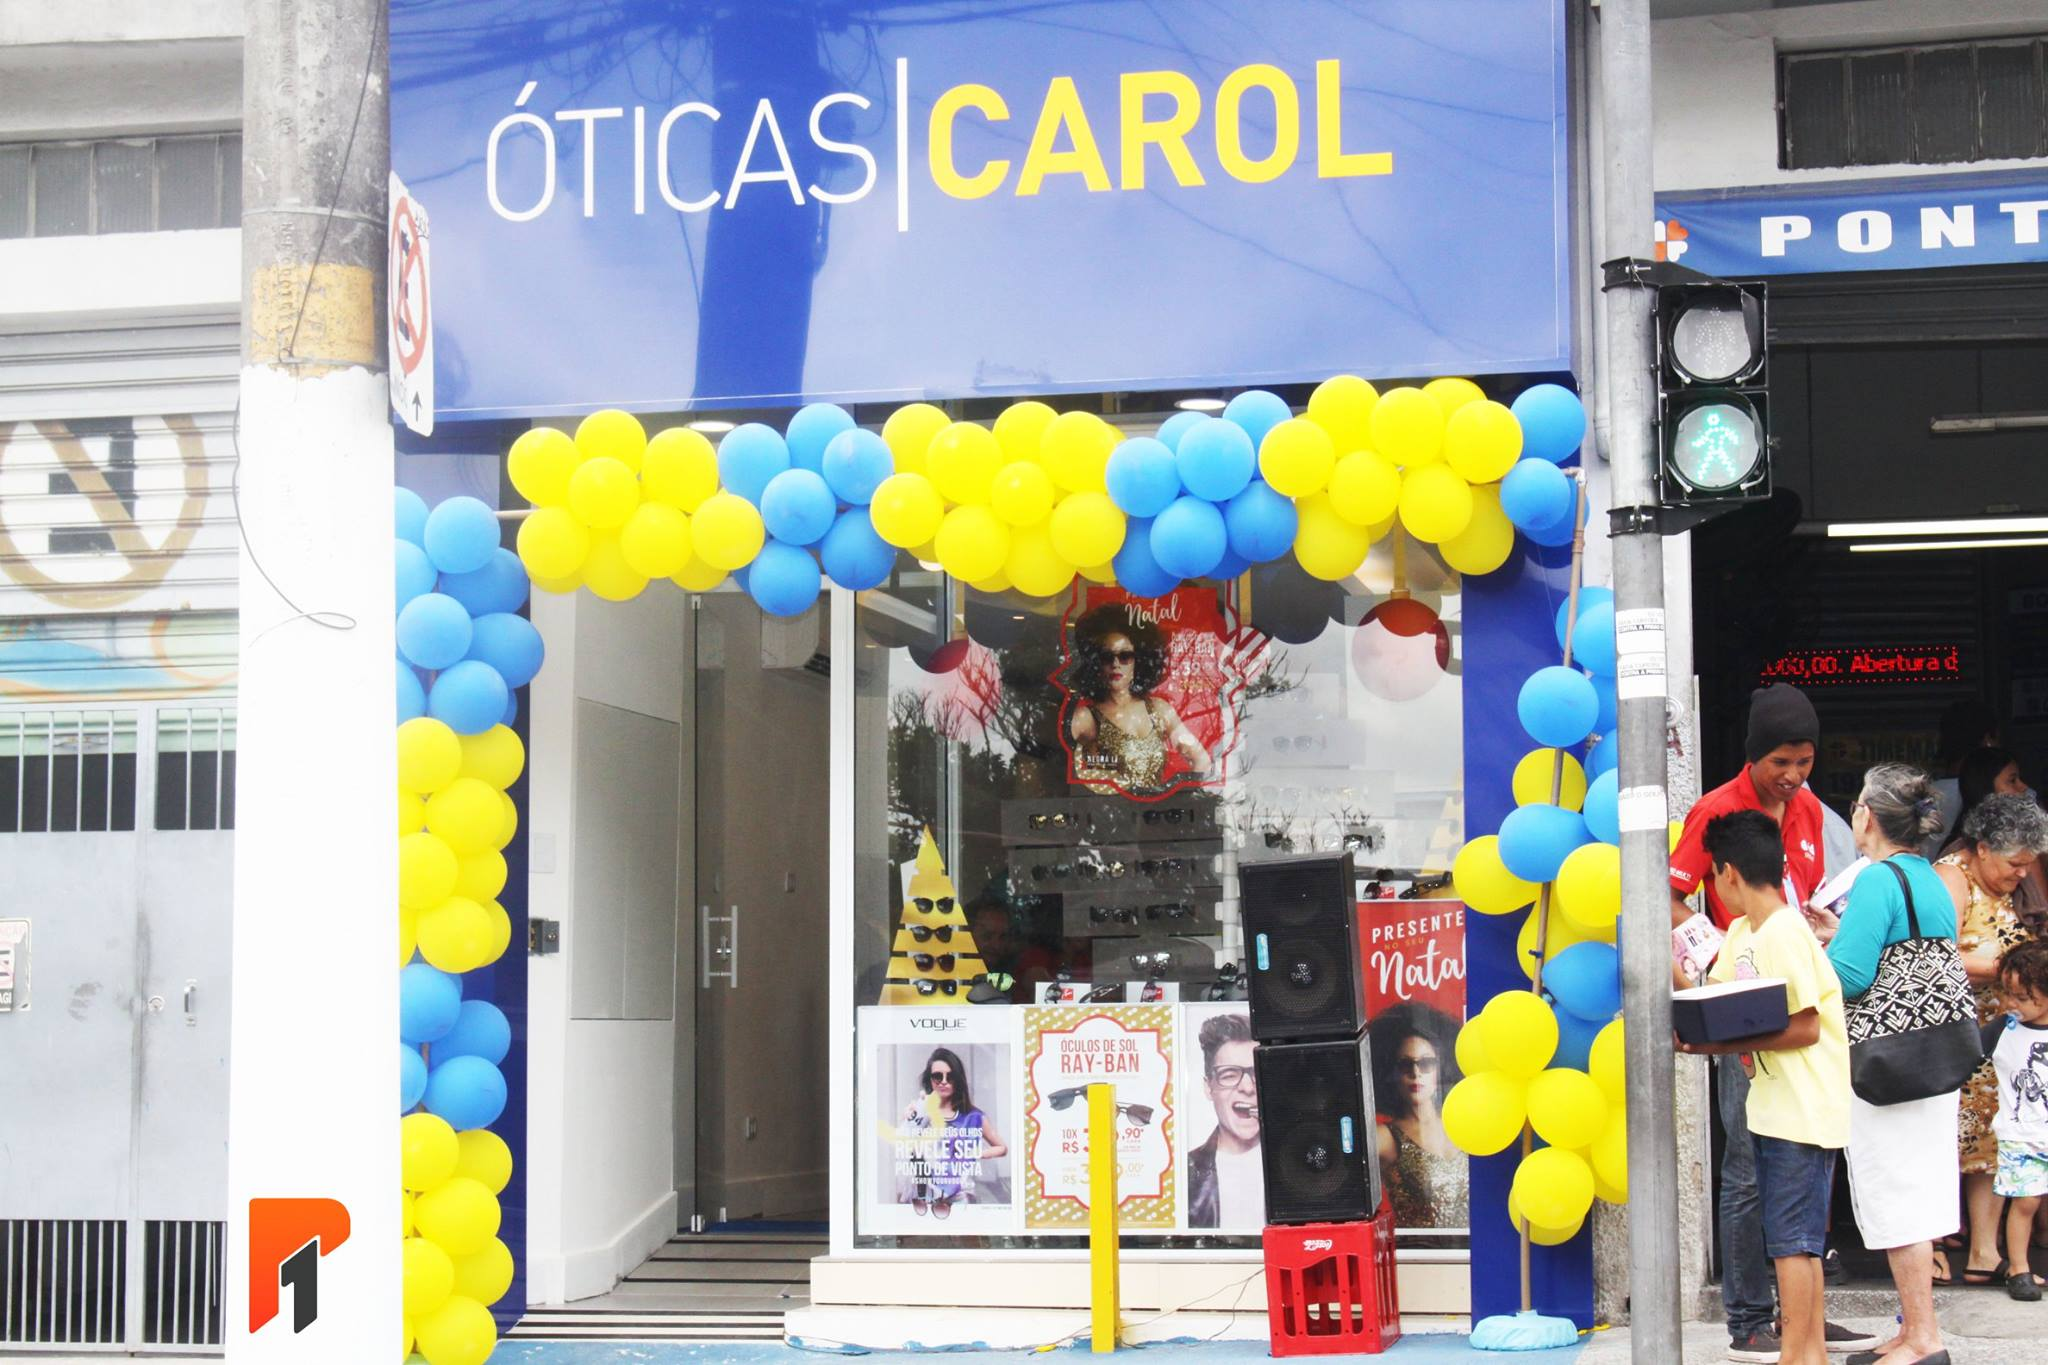 8c020c1130442 Otica Carol Patio Belem « One More Soul